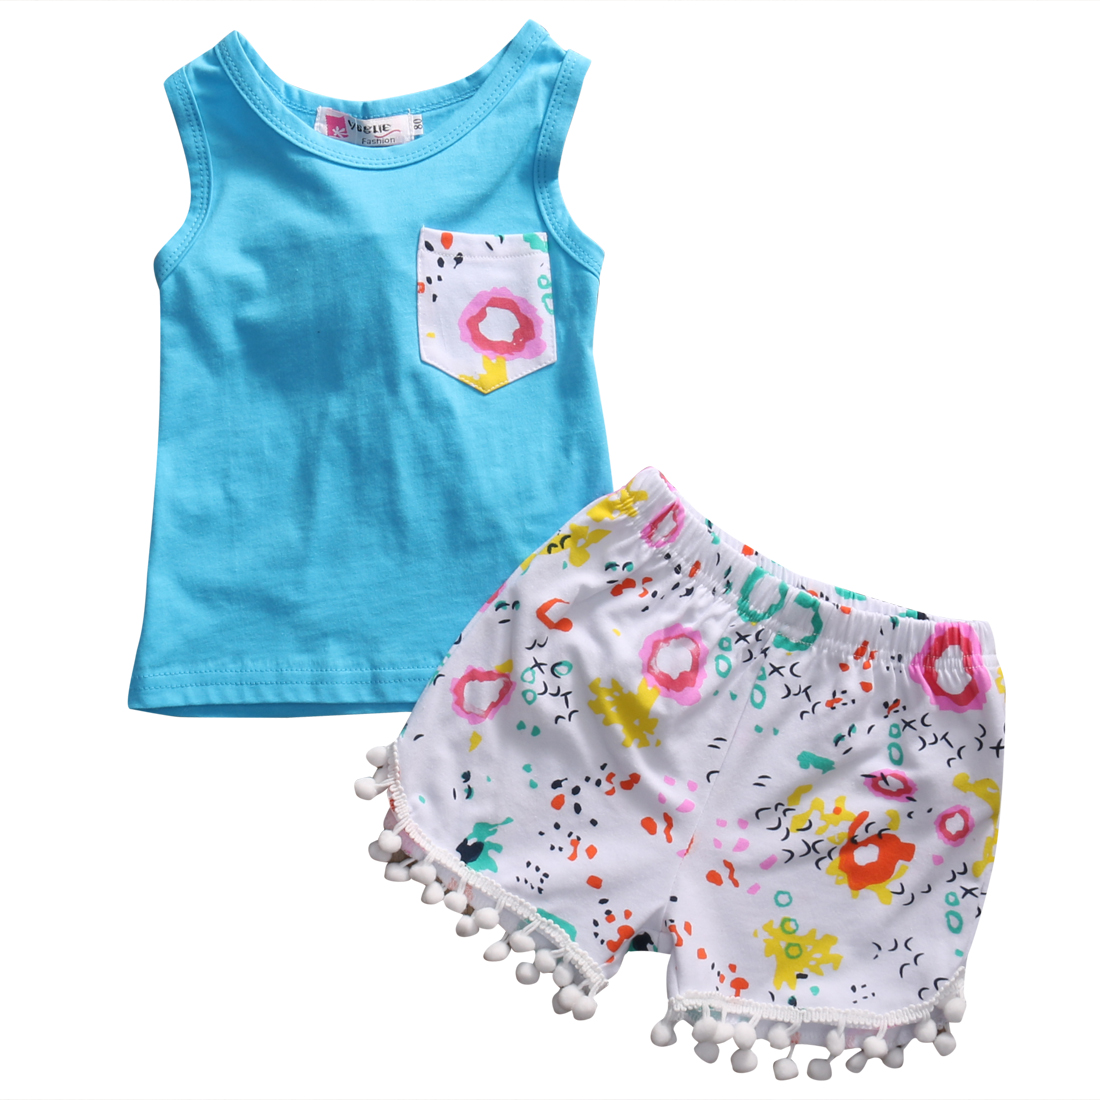 2PCS Toddler Girl Clothing Summer Kids Infant Baby Girls Tops Cotton Sleeveless T-shirt+Floral Tassel Shorts Kids Clothes Outfit hot sale 2016 kids boys girls summer tops baby t shirts fashion leaf print sleeveless kniting tee baby clothes children t shirt